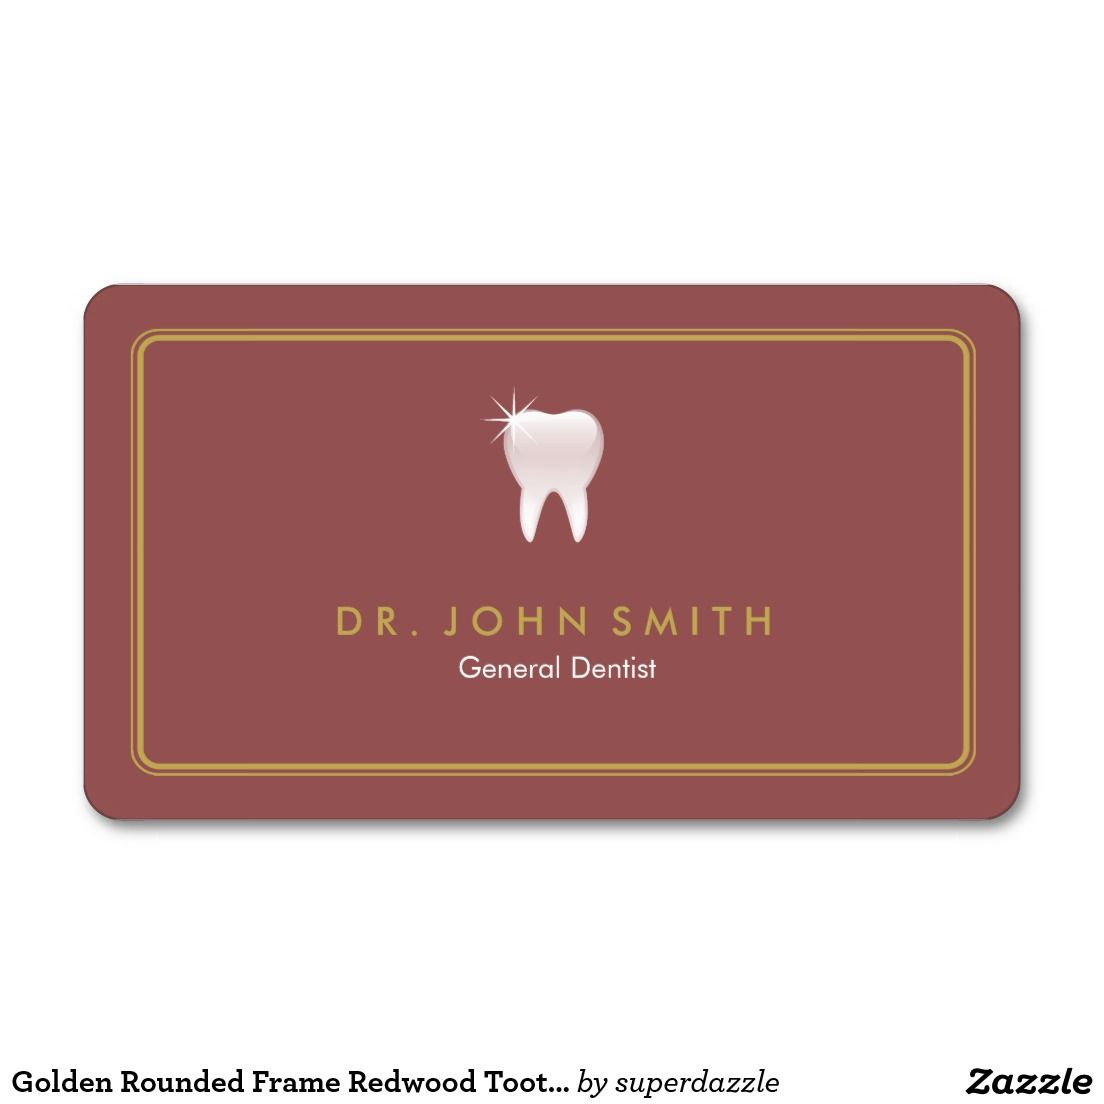 Golden Rounded Frame Redwood Tooth Dental Appointment Card Dental